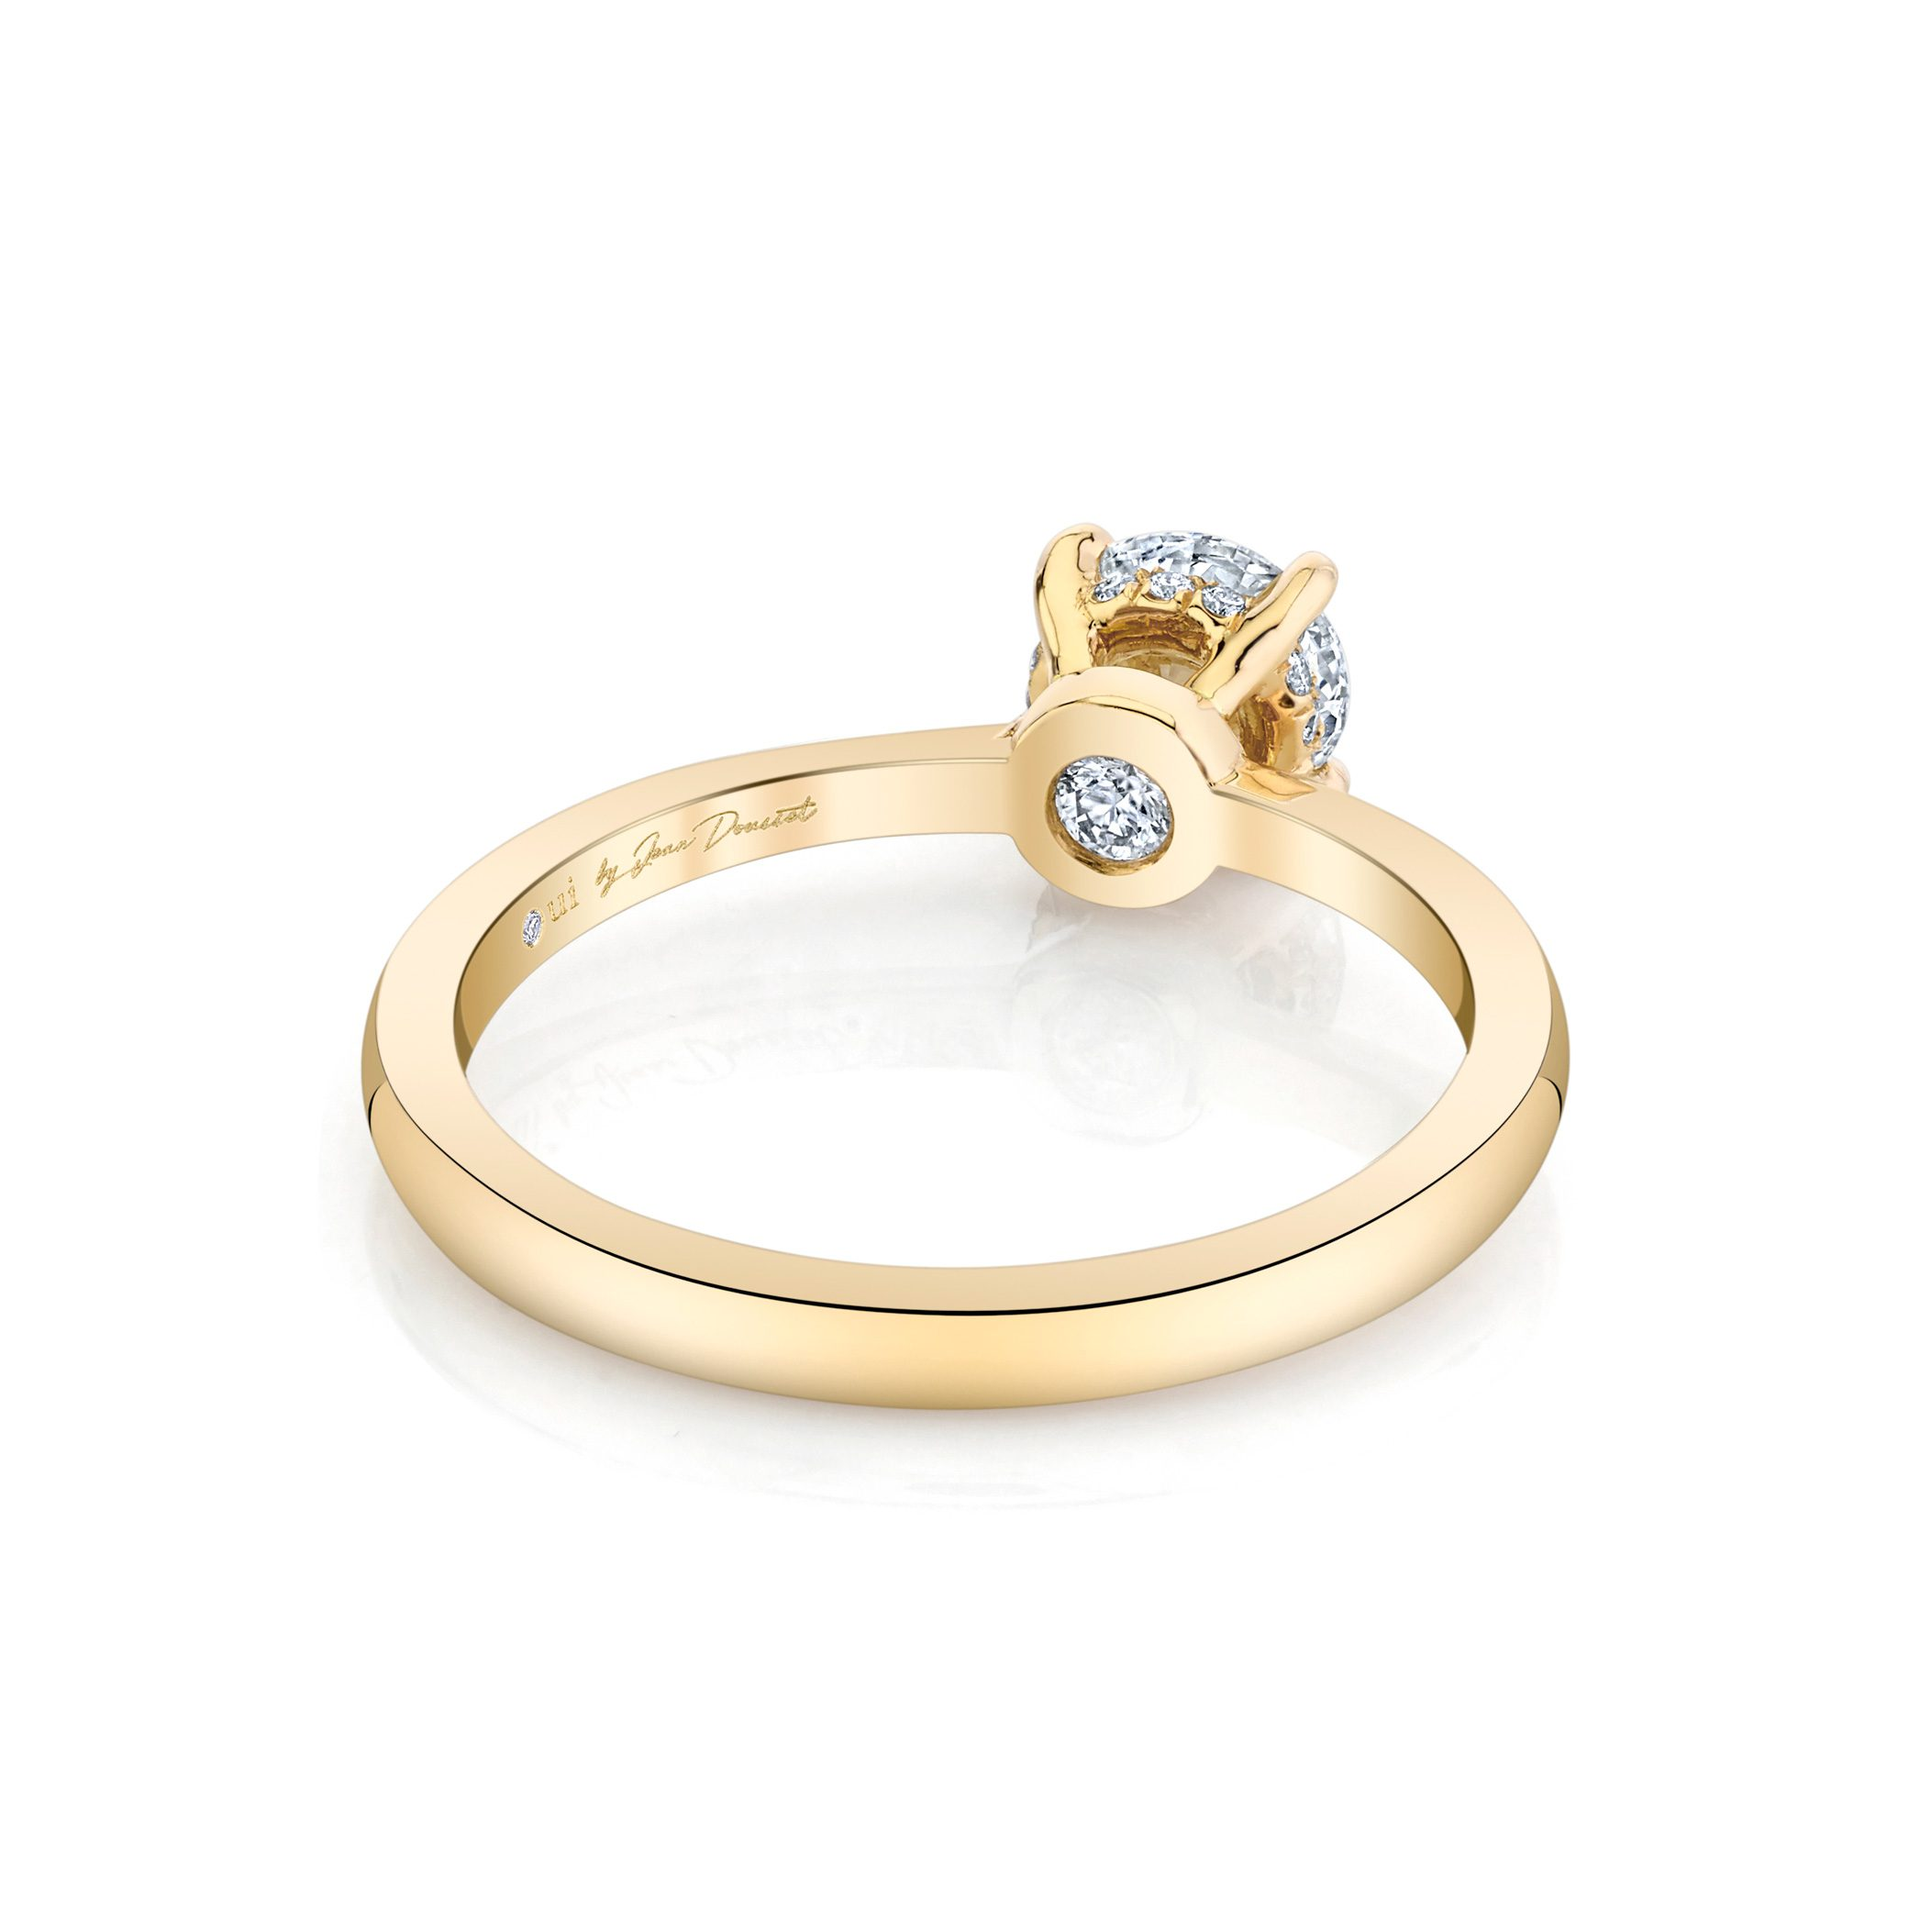 Colette Round Brilliant Solitaire Engagement Ring with a sold band in 18k Yellow Gold Back View by Oui by Jean Dousset